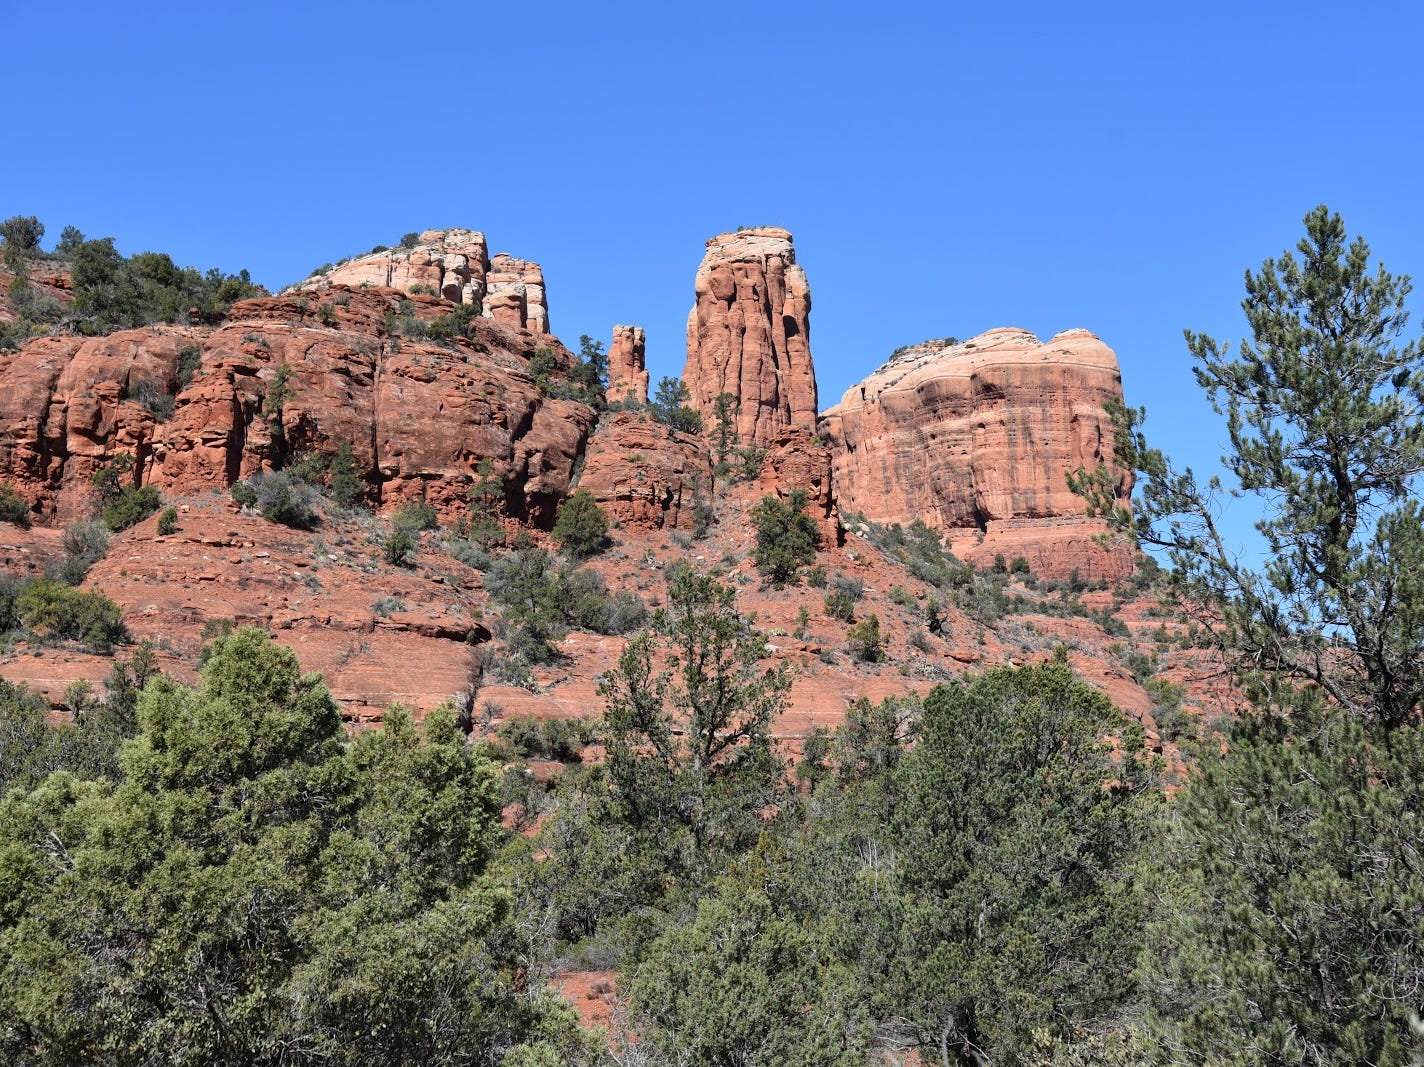 The hike shows seldom-seen angles of Cathedral Rock.